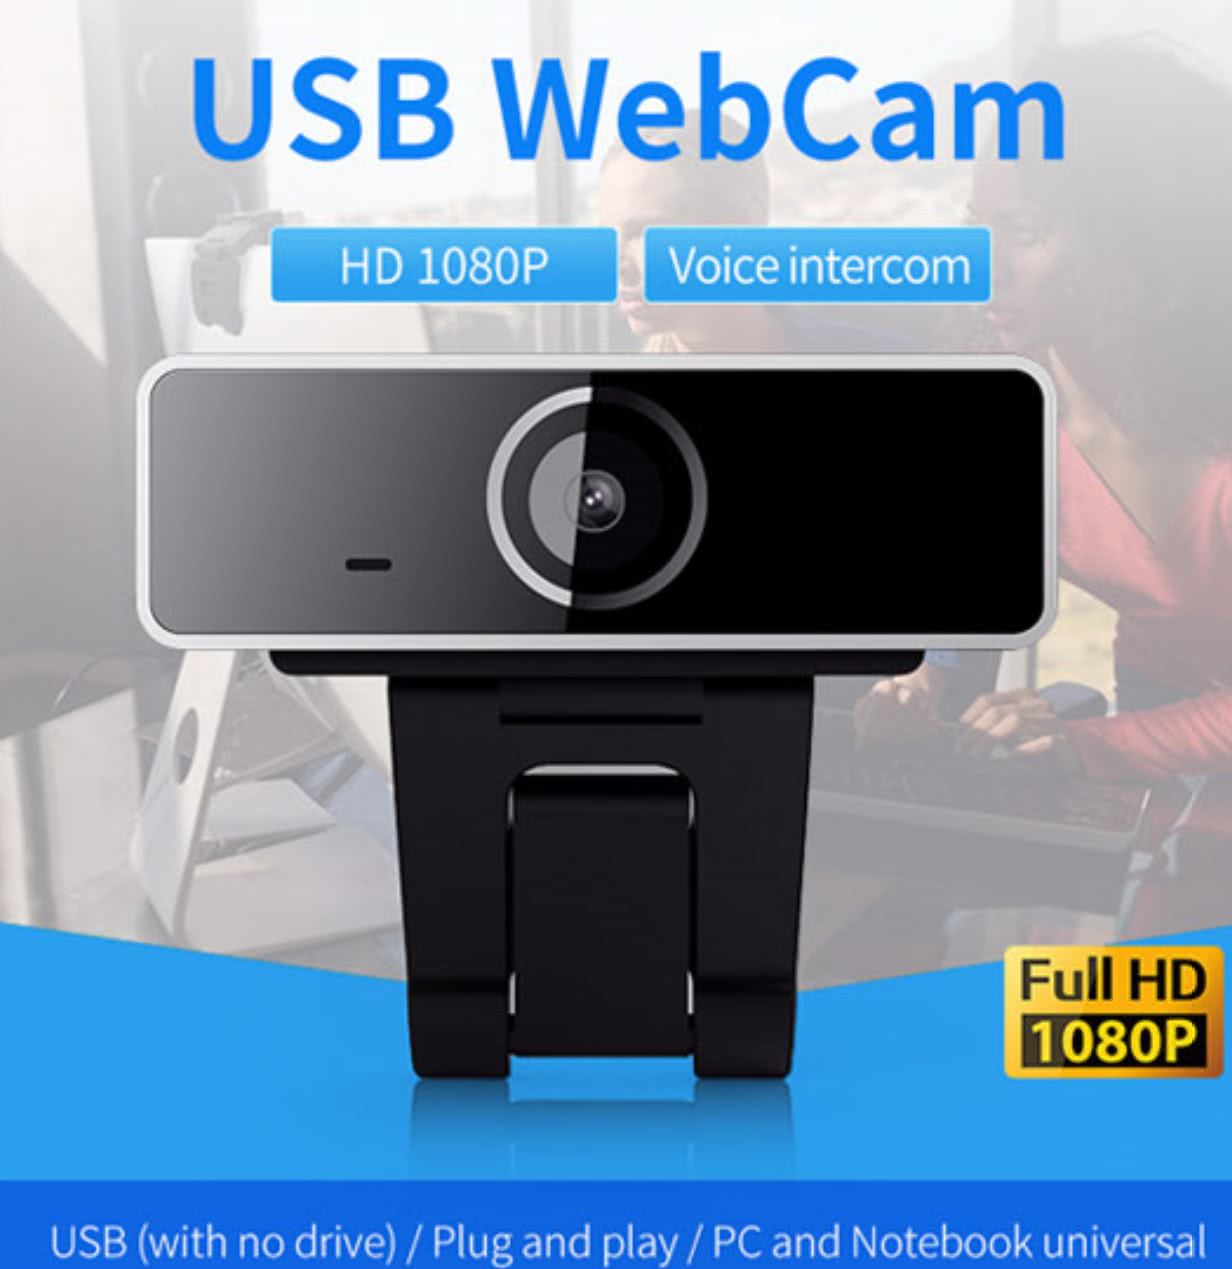 USB 1080p H.264 Full HD Webcam for PC / Notebook with built-in 48dB Microphone | Full HD CMOS Sensor